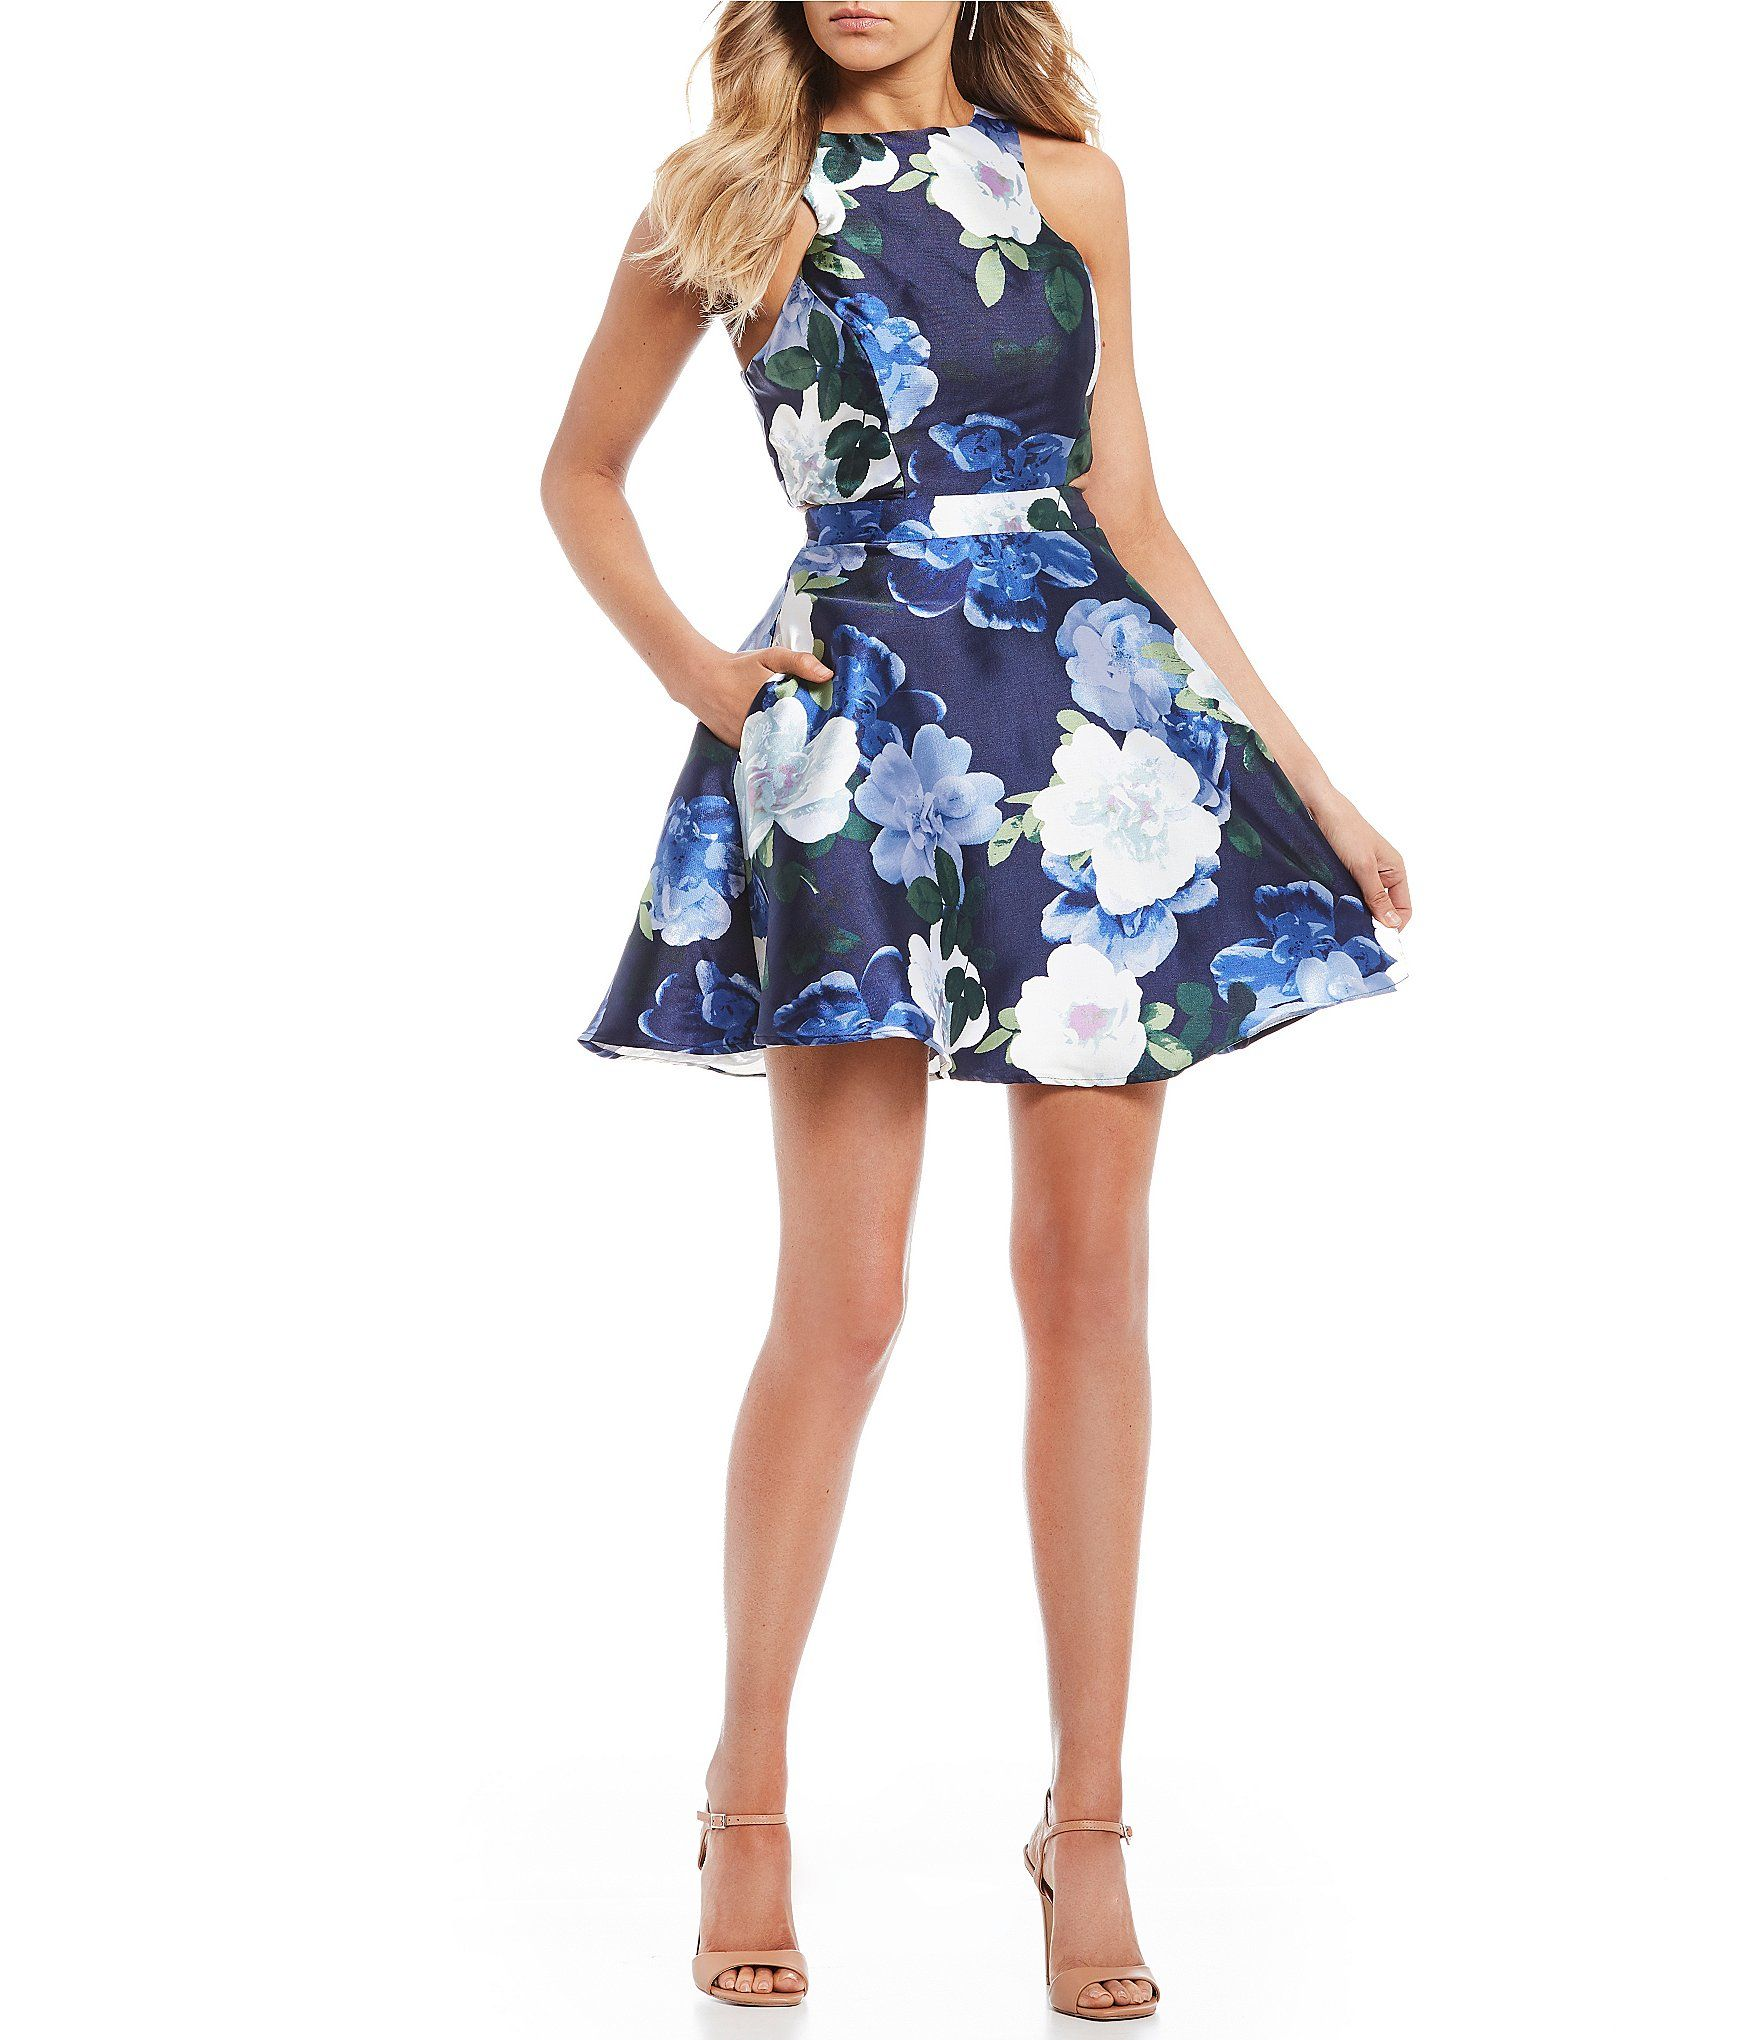 66153b8a0c6 Shop for Xtraordinary Floral Print Side Cut Out Fit-and-Flare Dress at  Dillards.com. Visit Dillards.com to find clothing